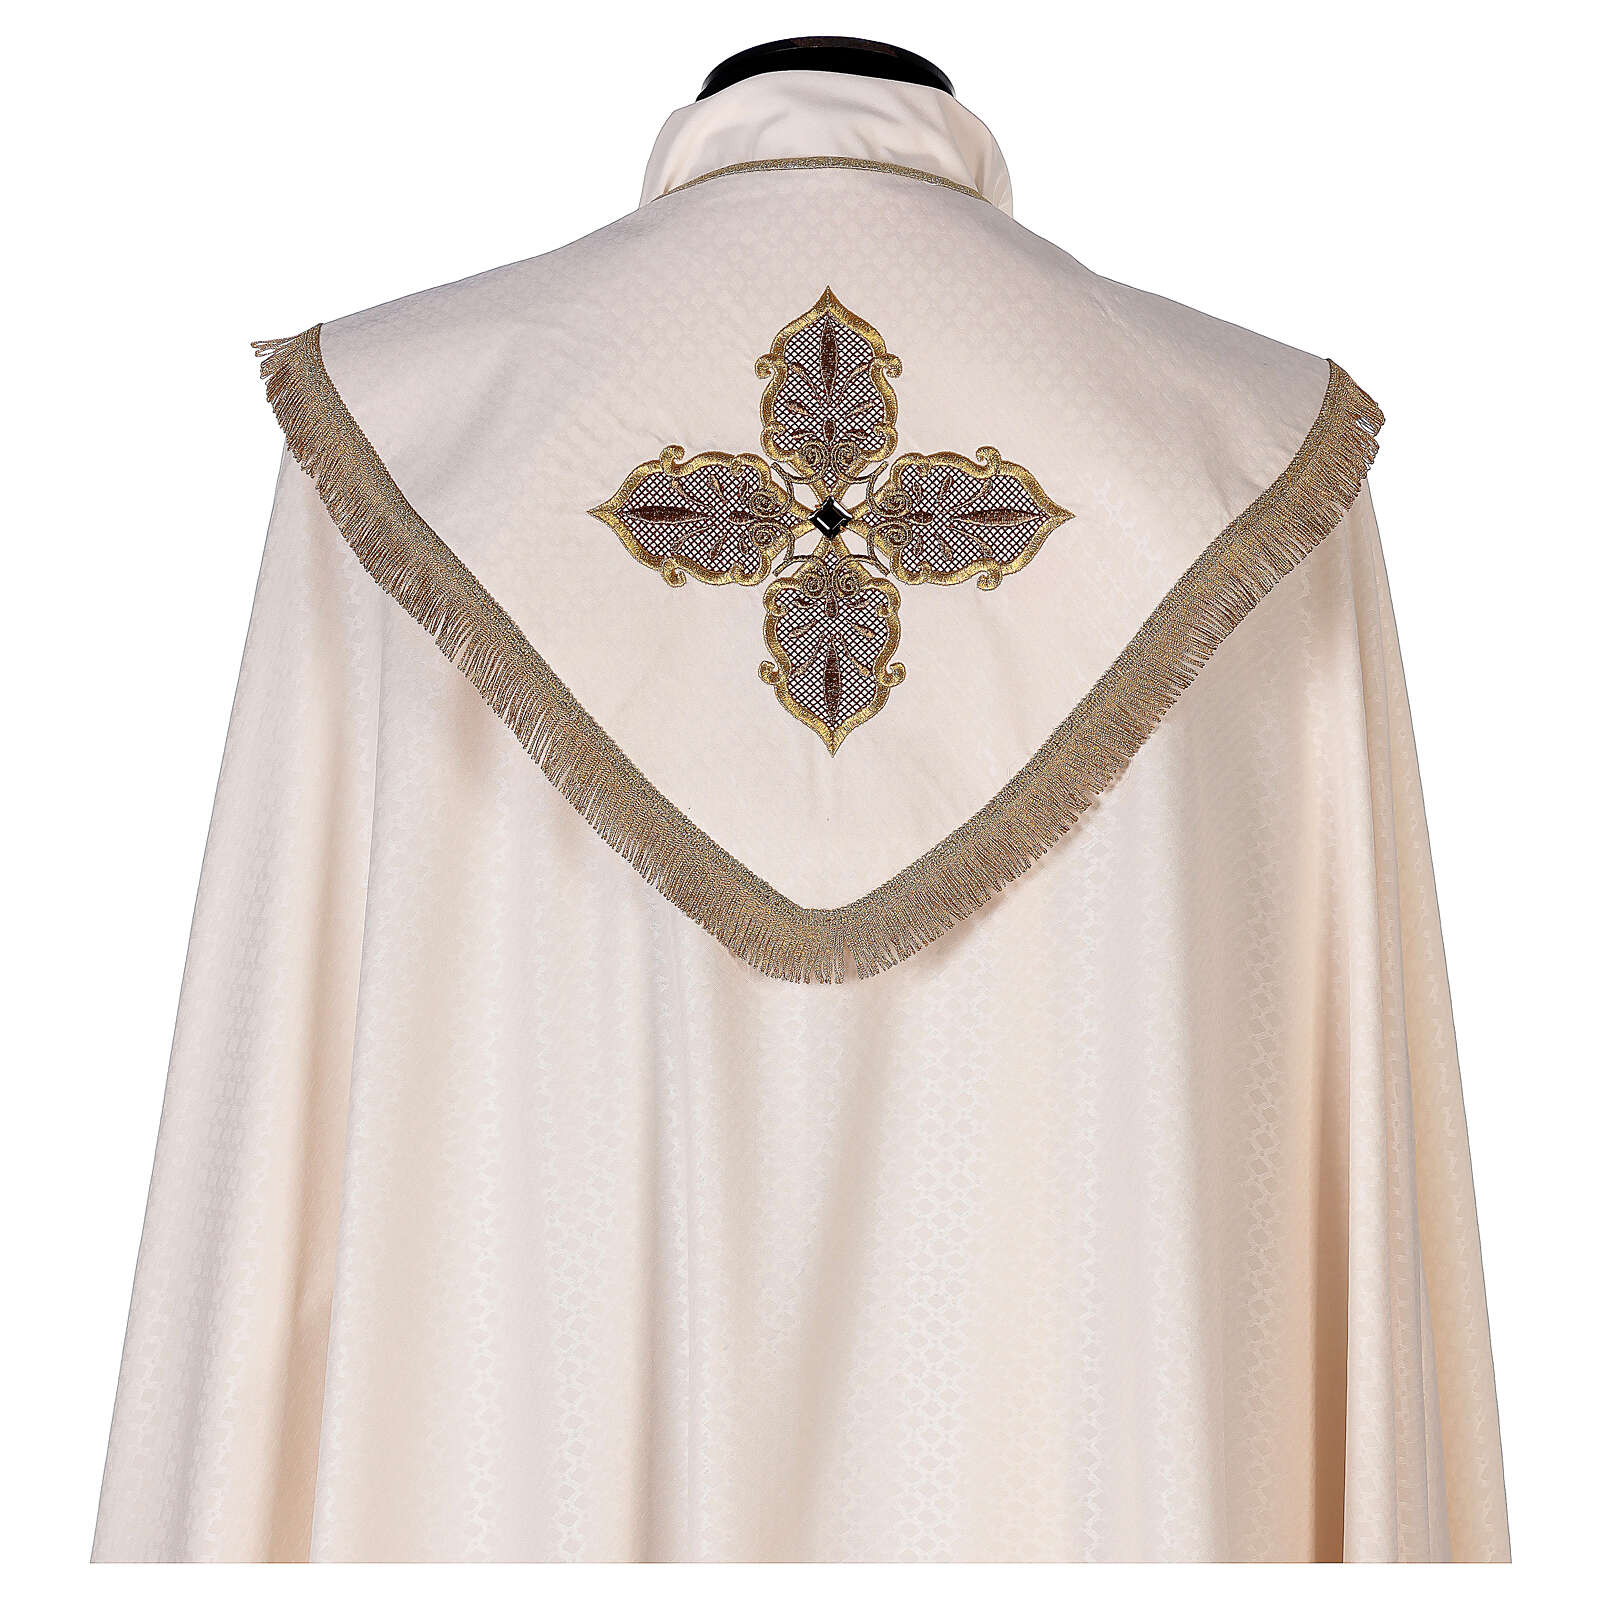 Priest cope textured fabric 100% polyester machine embroidered green stone 4